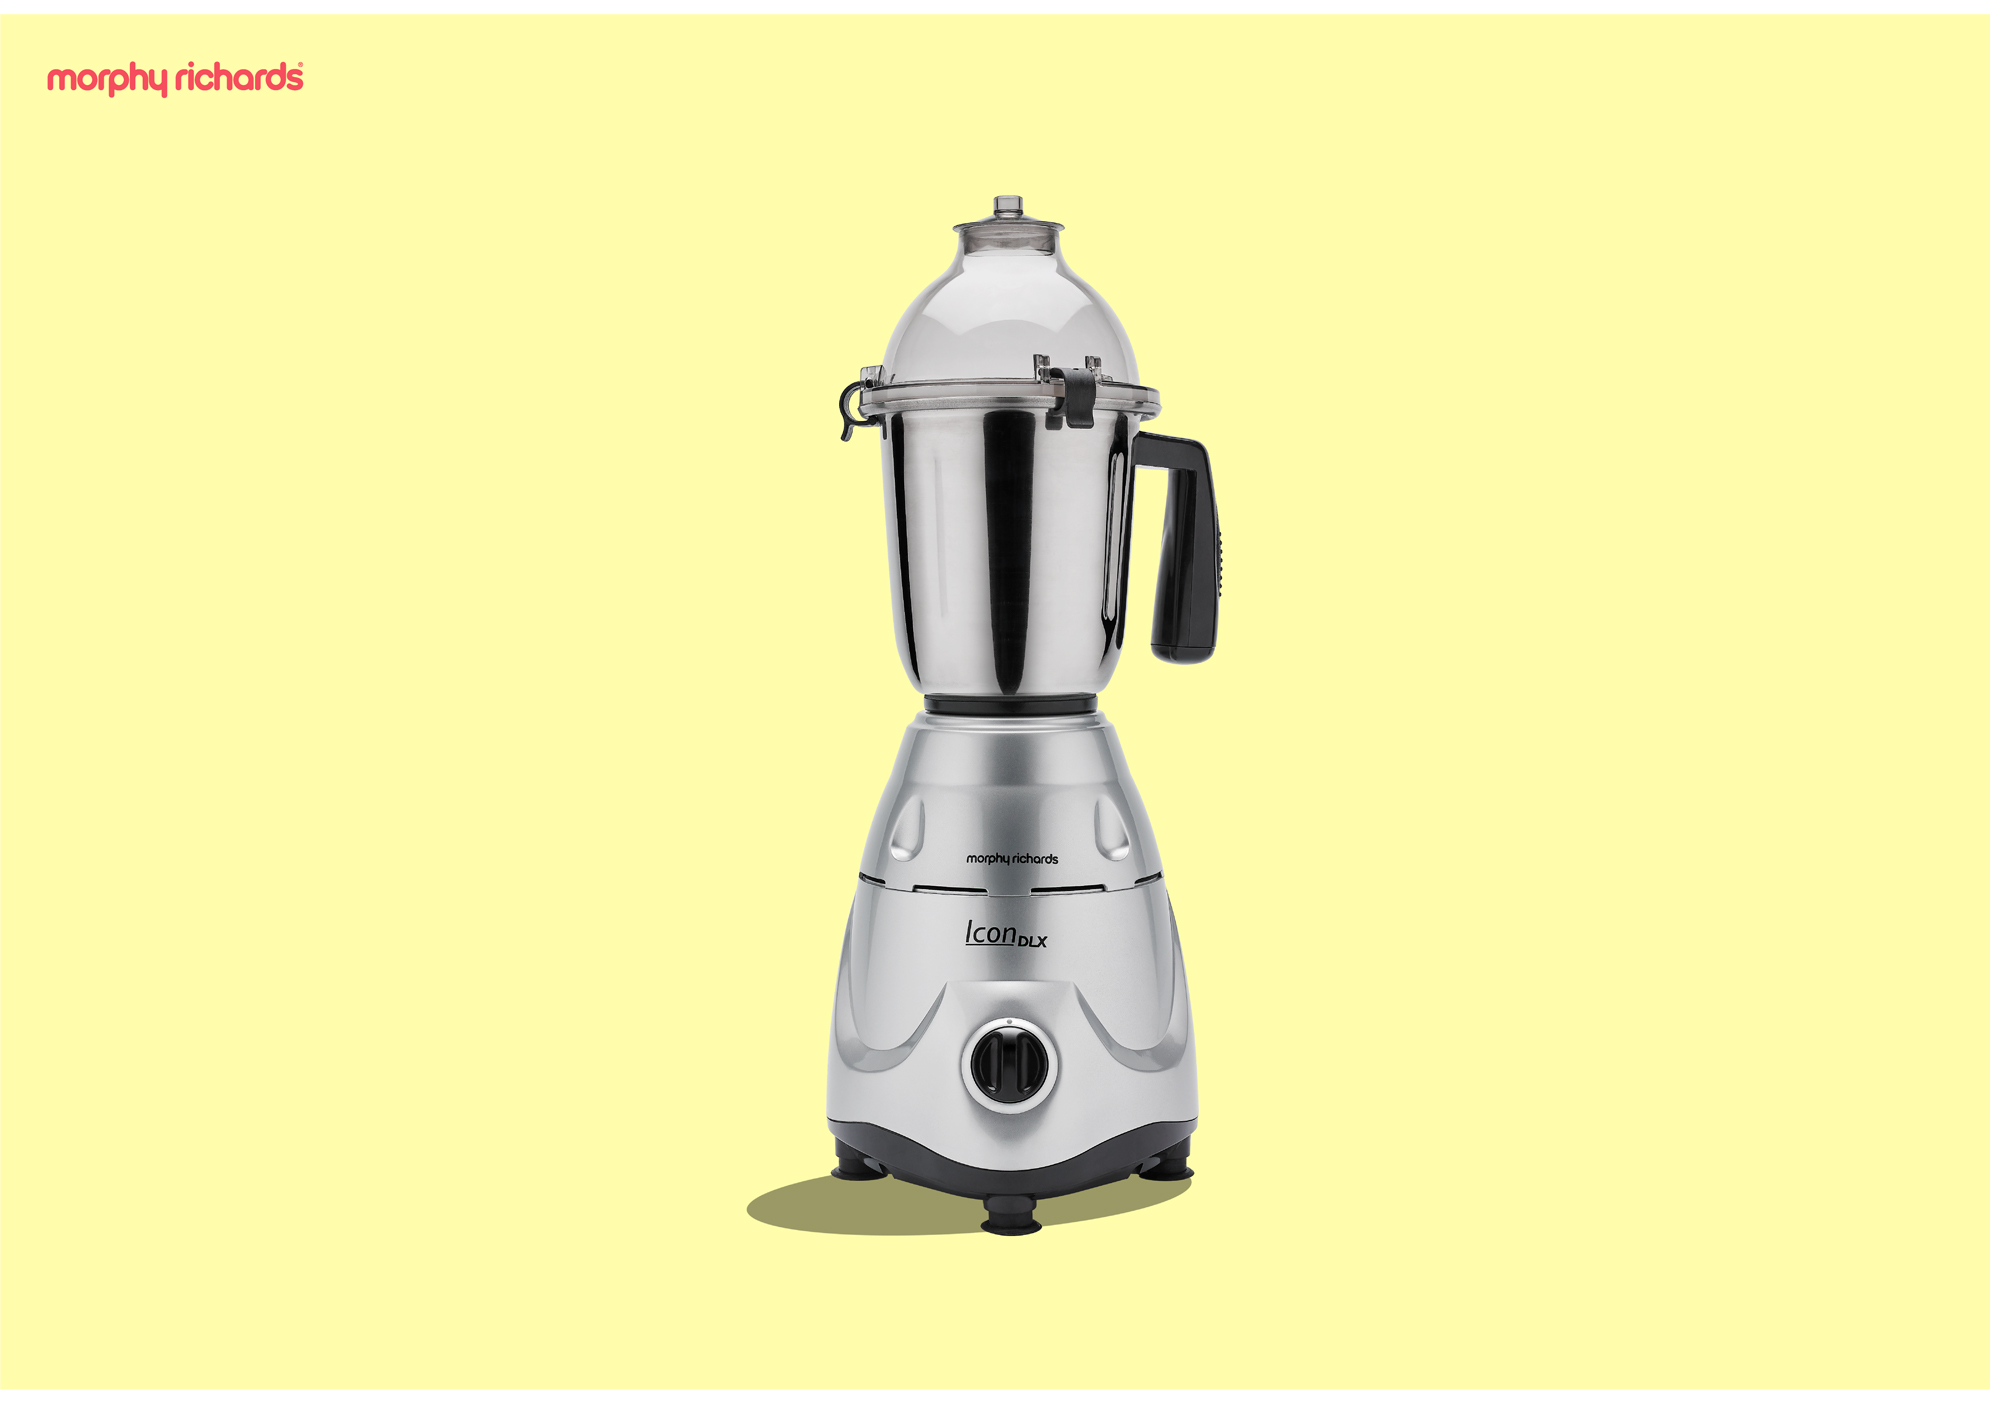 morphy richards, Mixer, grinder, product, product photography